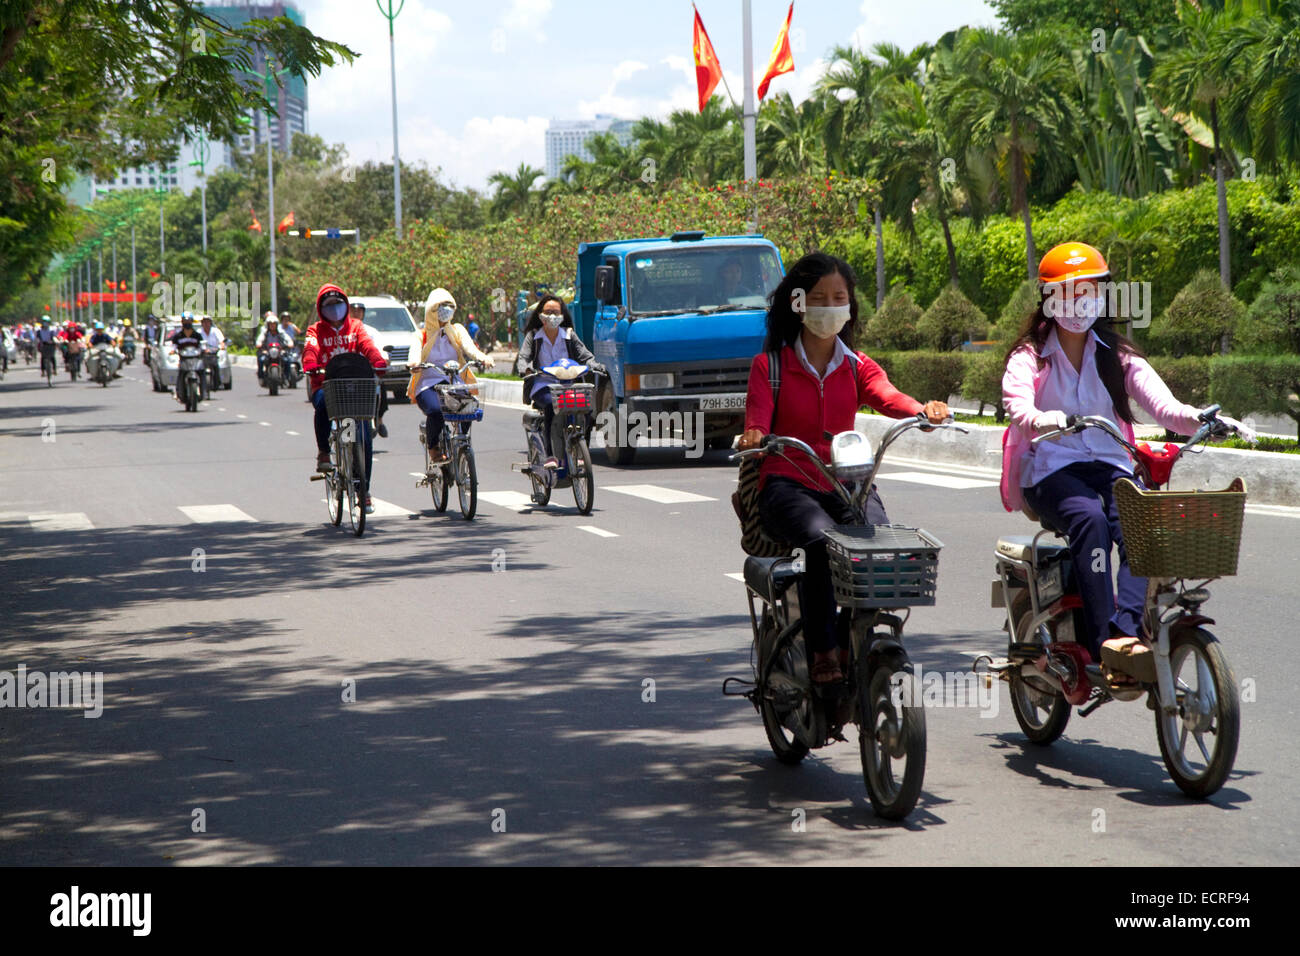 Scooter traffic on a street in Nha Trang, Vietnam. - Stock Image